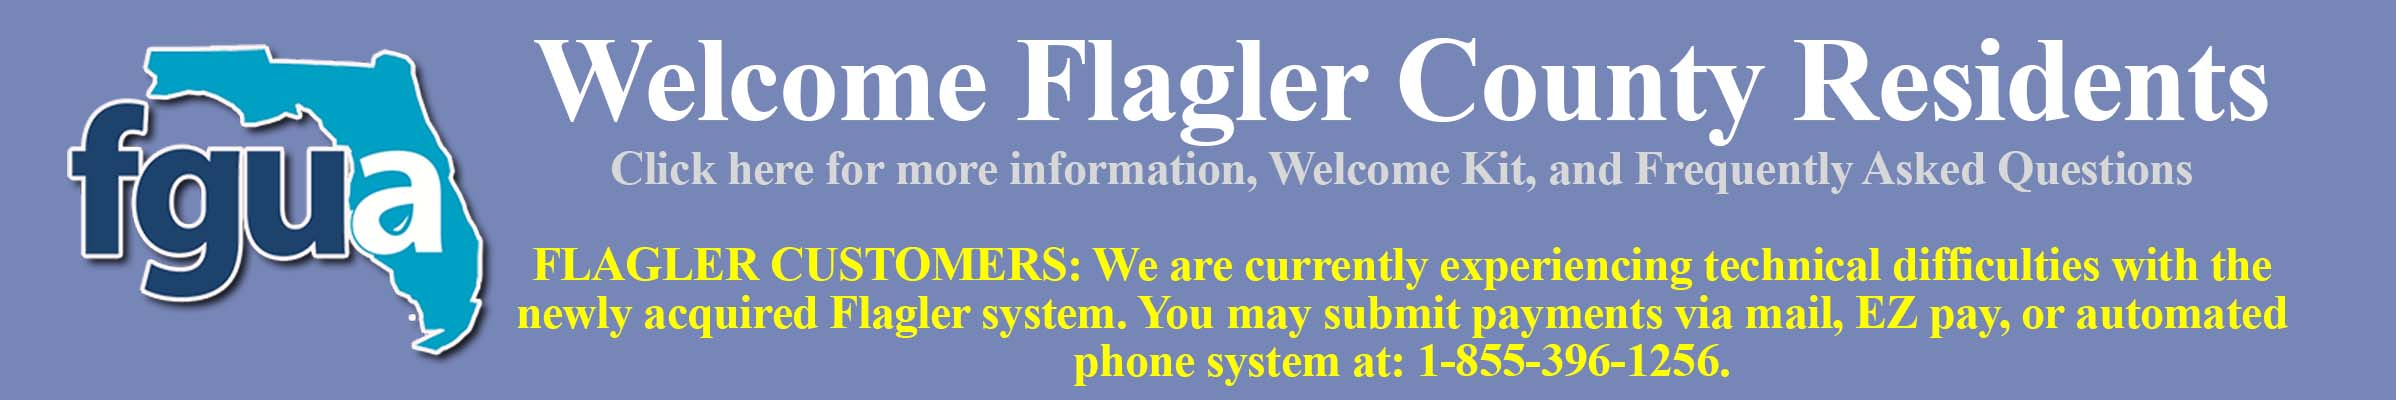 Flagler slide